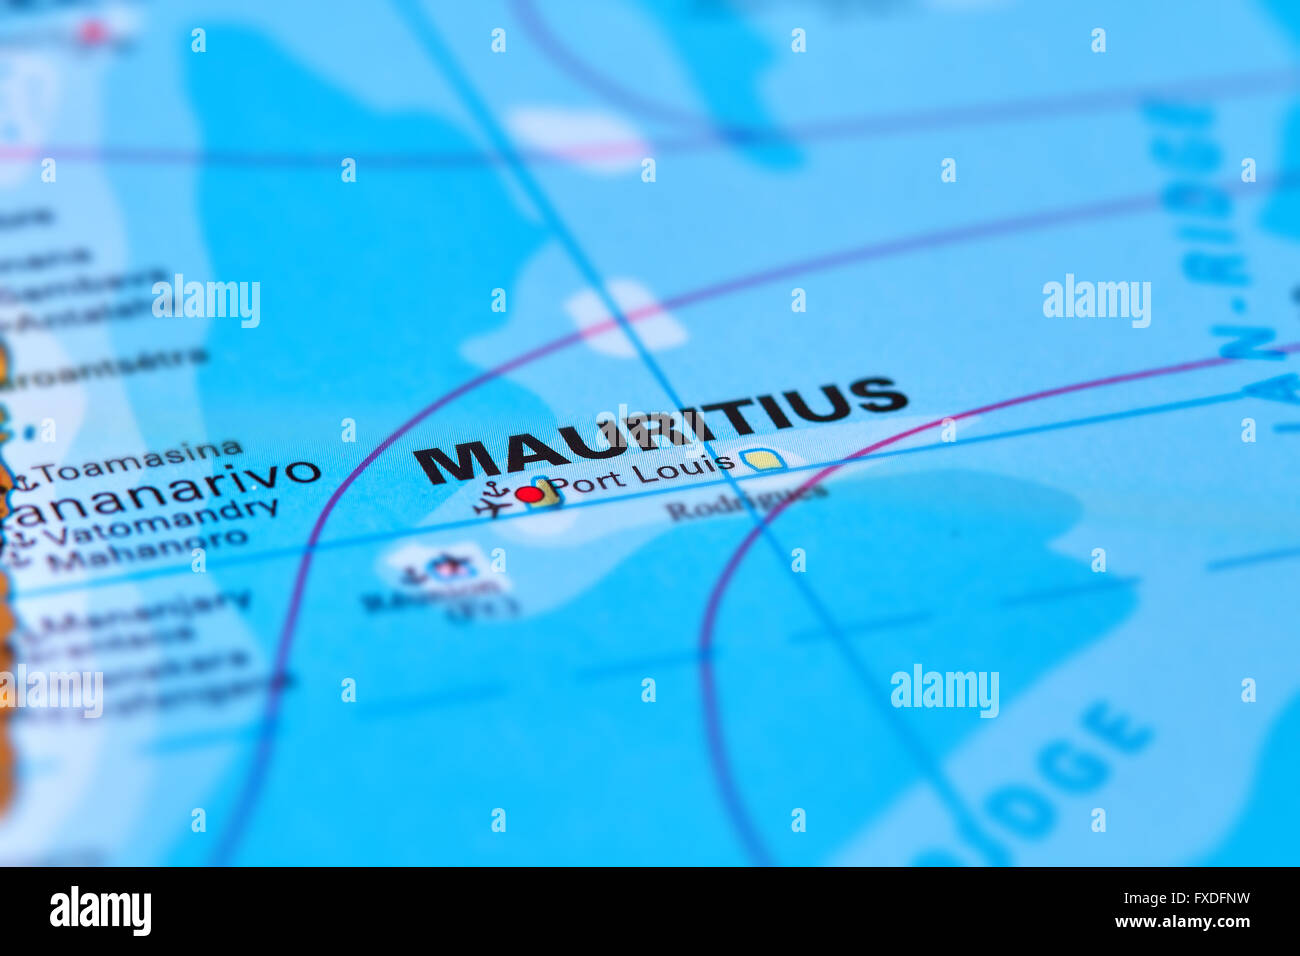 Mauritius Island in the Indian Ocean on the World Map Stock Photo ...